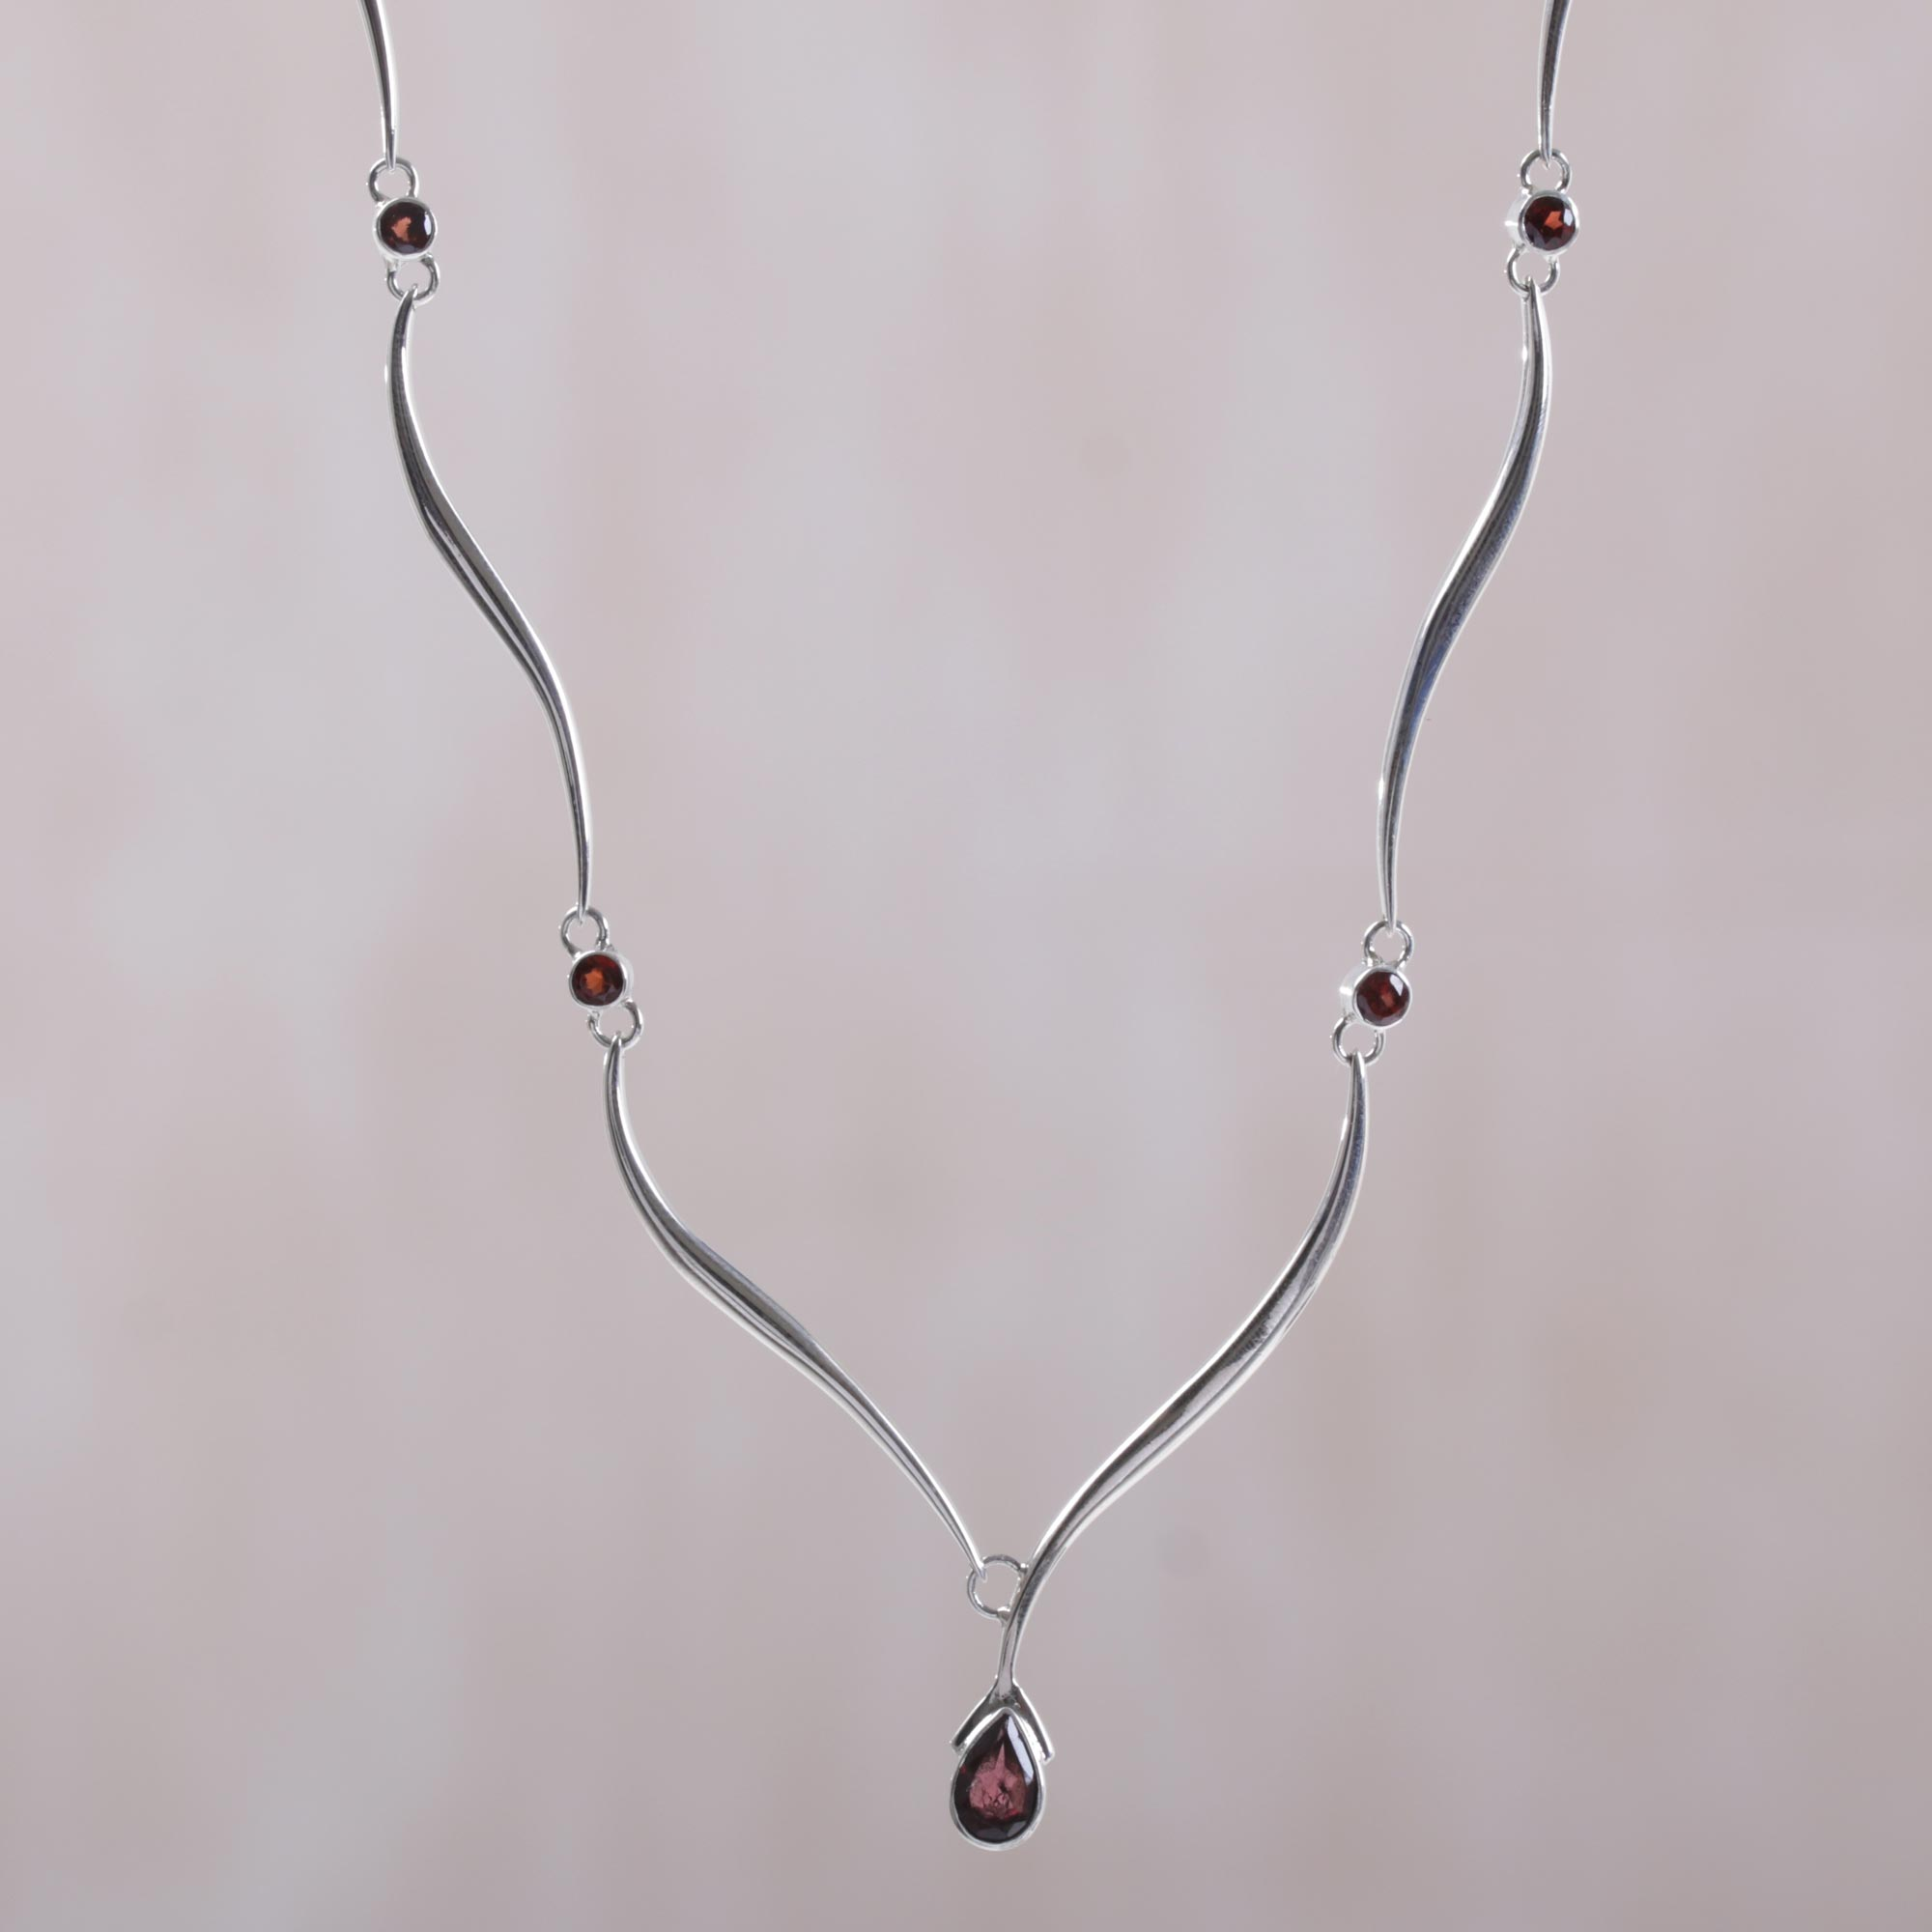 studio double product jewellery prev garnet pendant obsidian